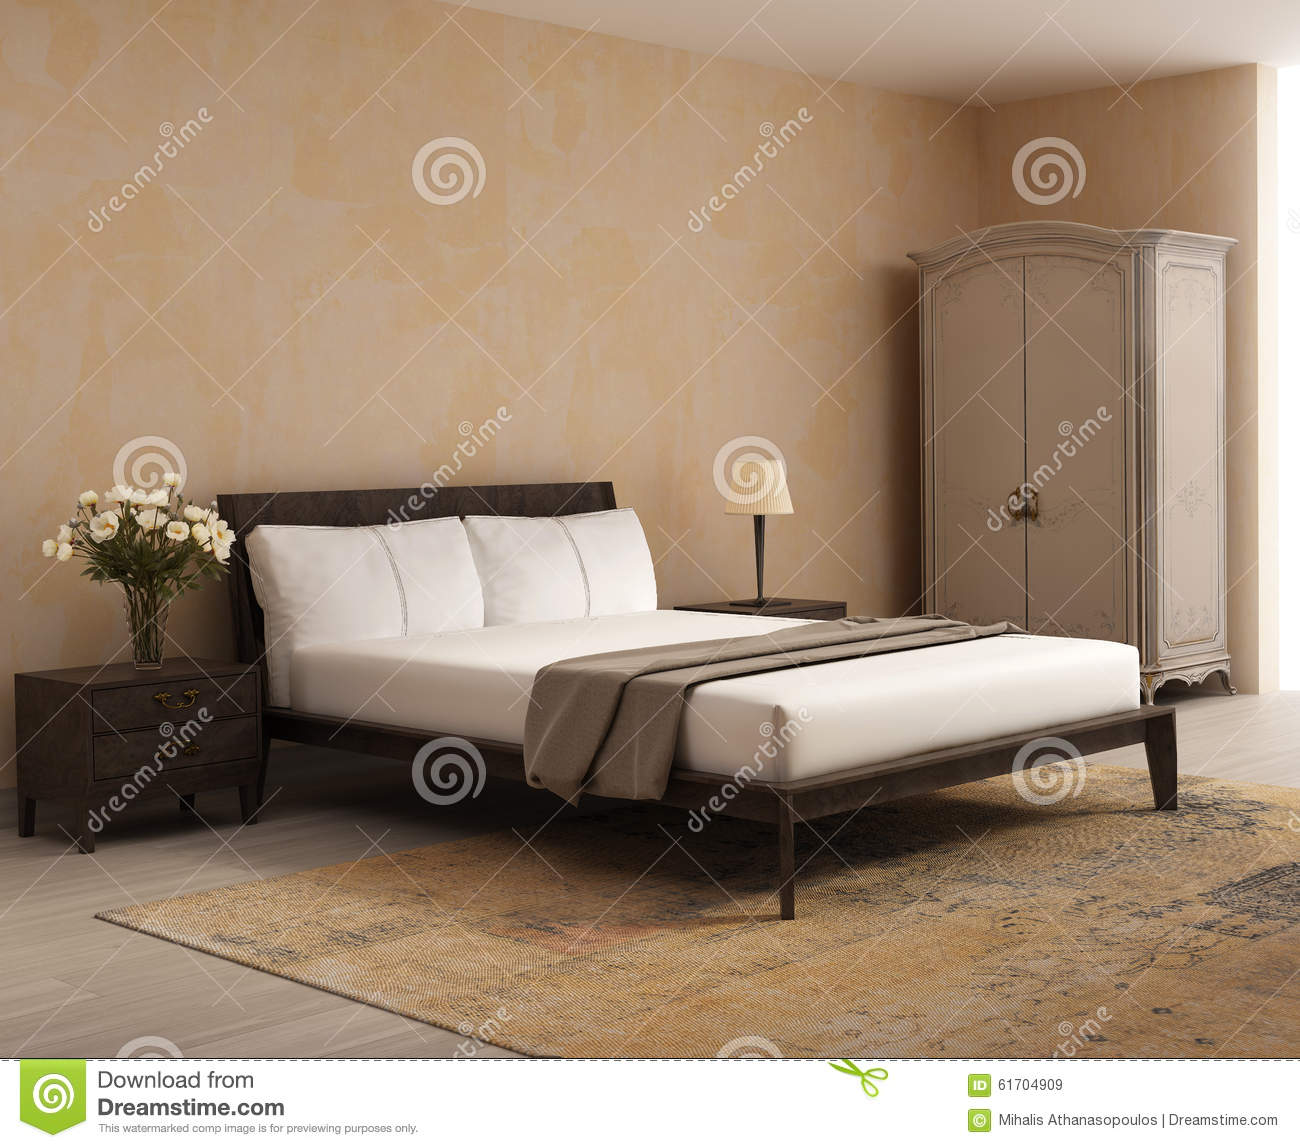 French Cottage Style Bedroom A Romantic Interior Stock Image ...